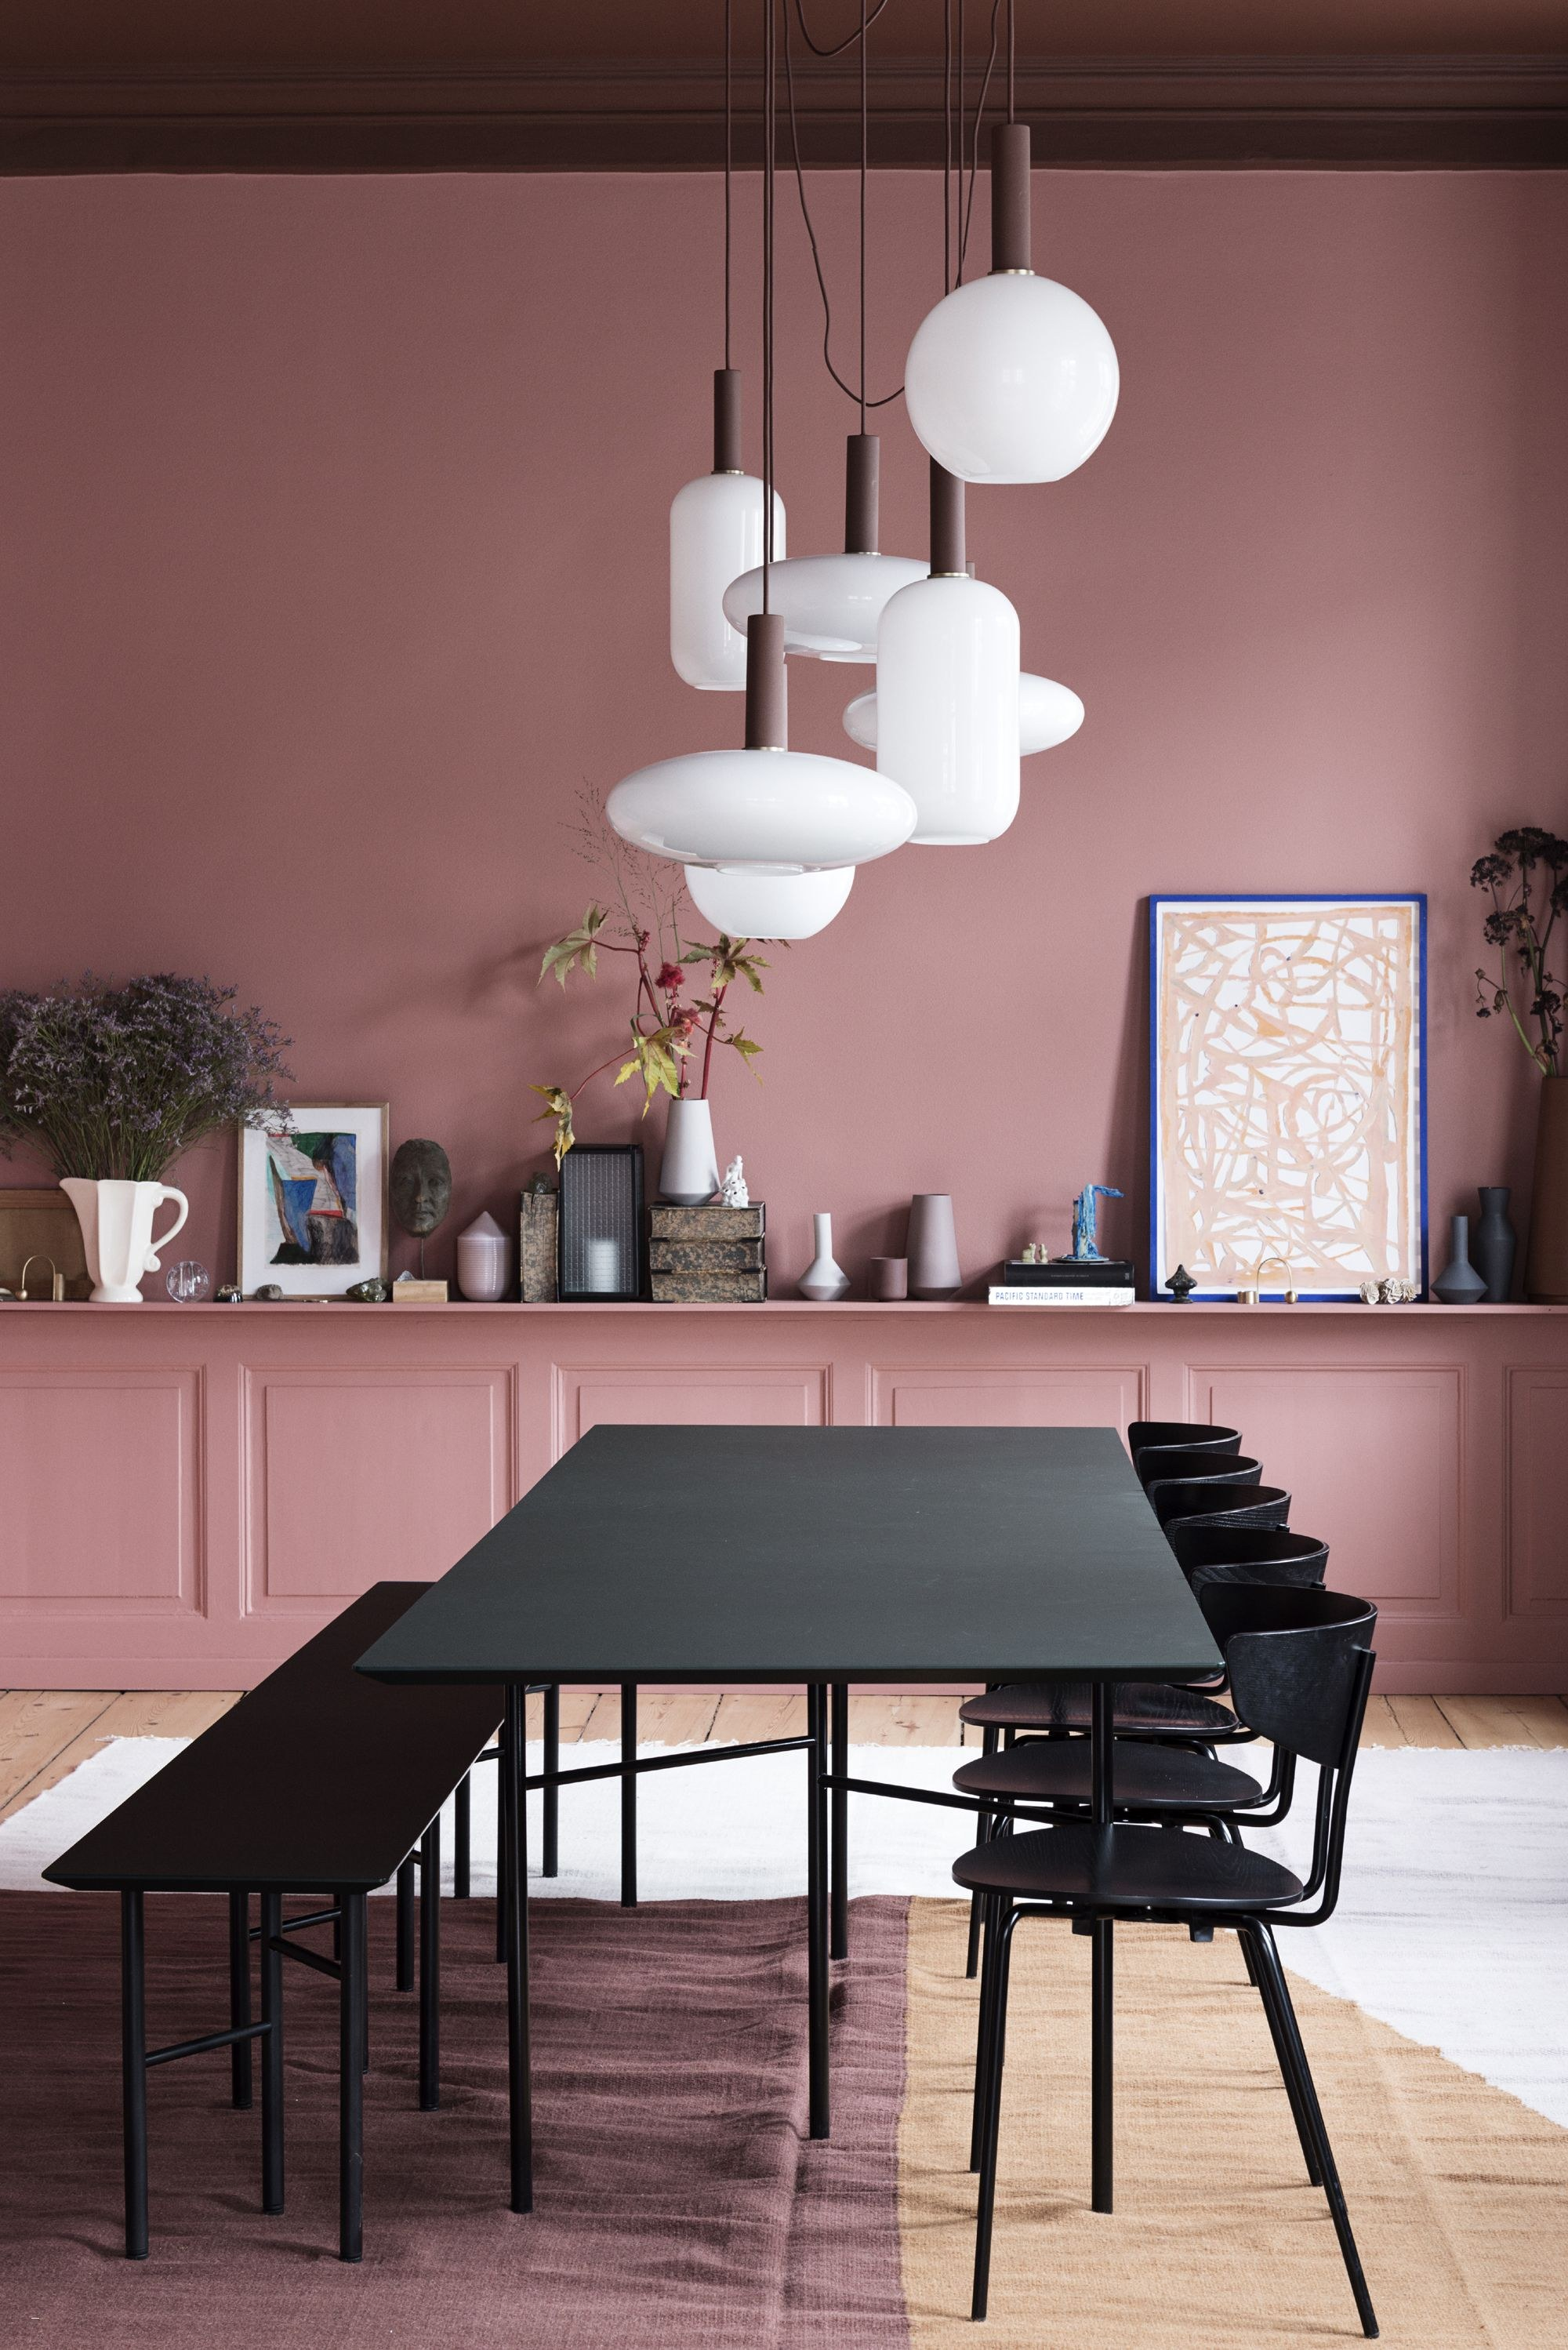 What's Hot On Pinterest Wes Anderson's Inspired Dining Room! 3